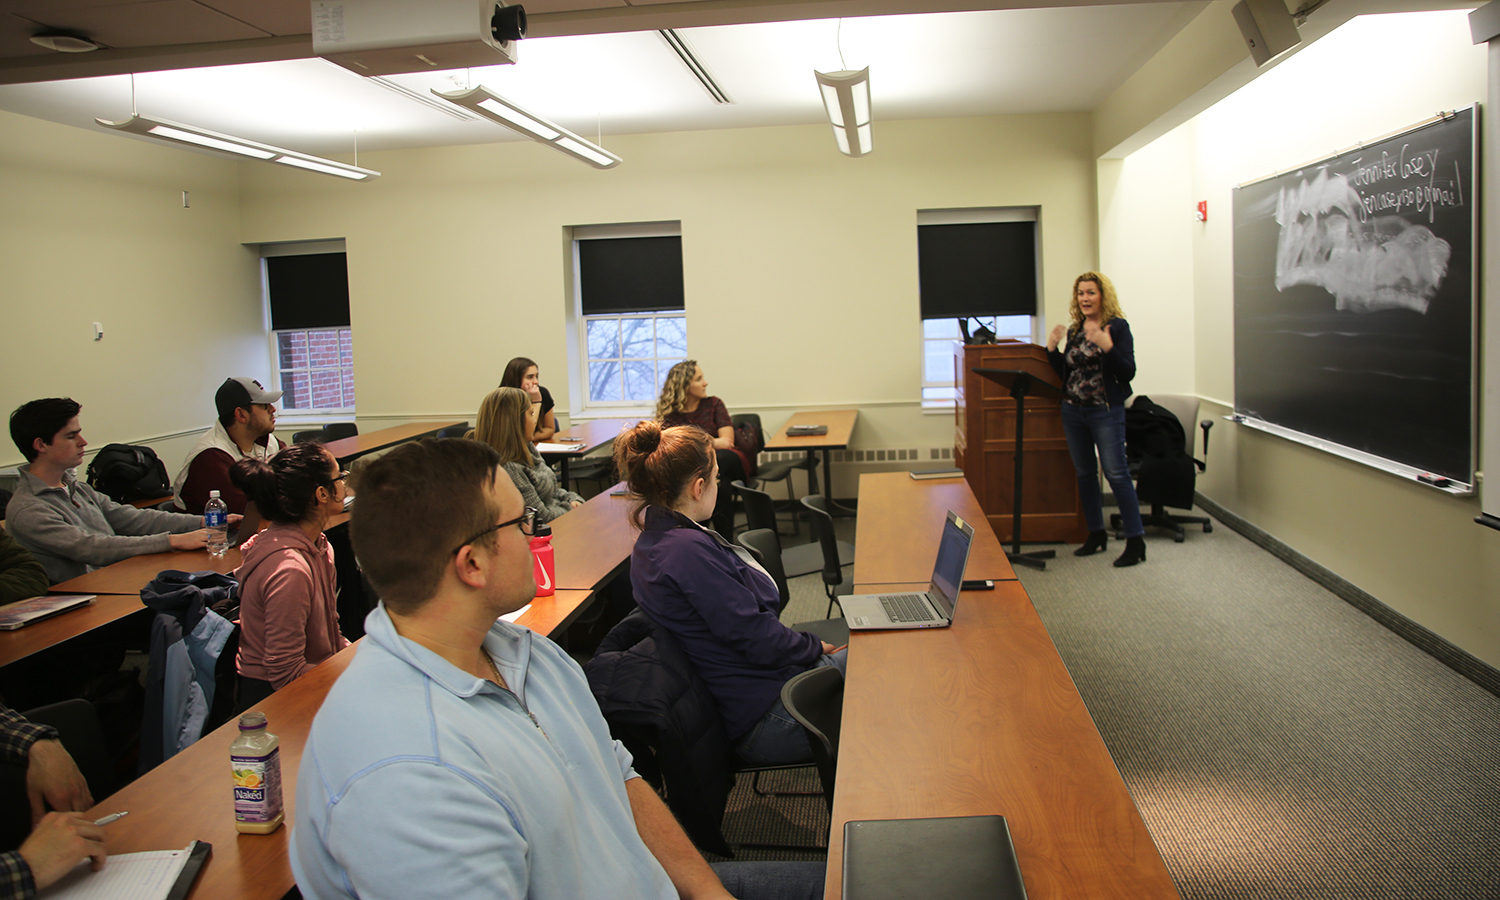 In Trinity Hall, Partner at Ahmuty, Demers & McManus Jennifer A. Casey '90 speaks with students about careers in law as part of the Professional In Residence series